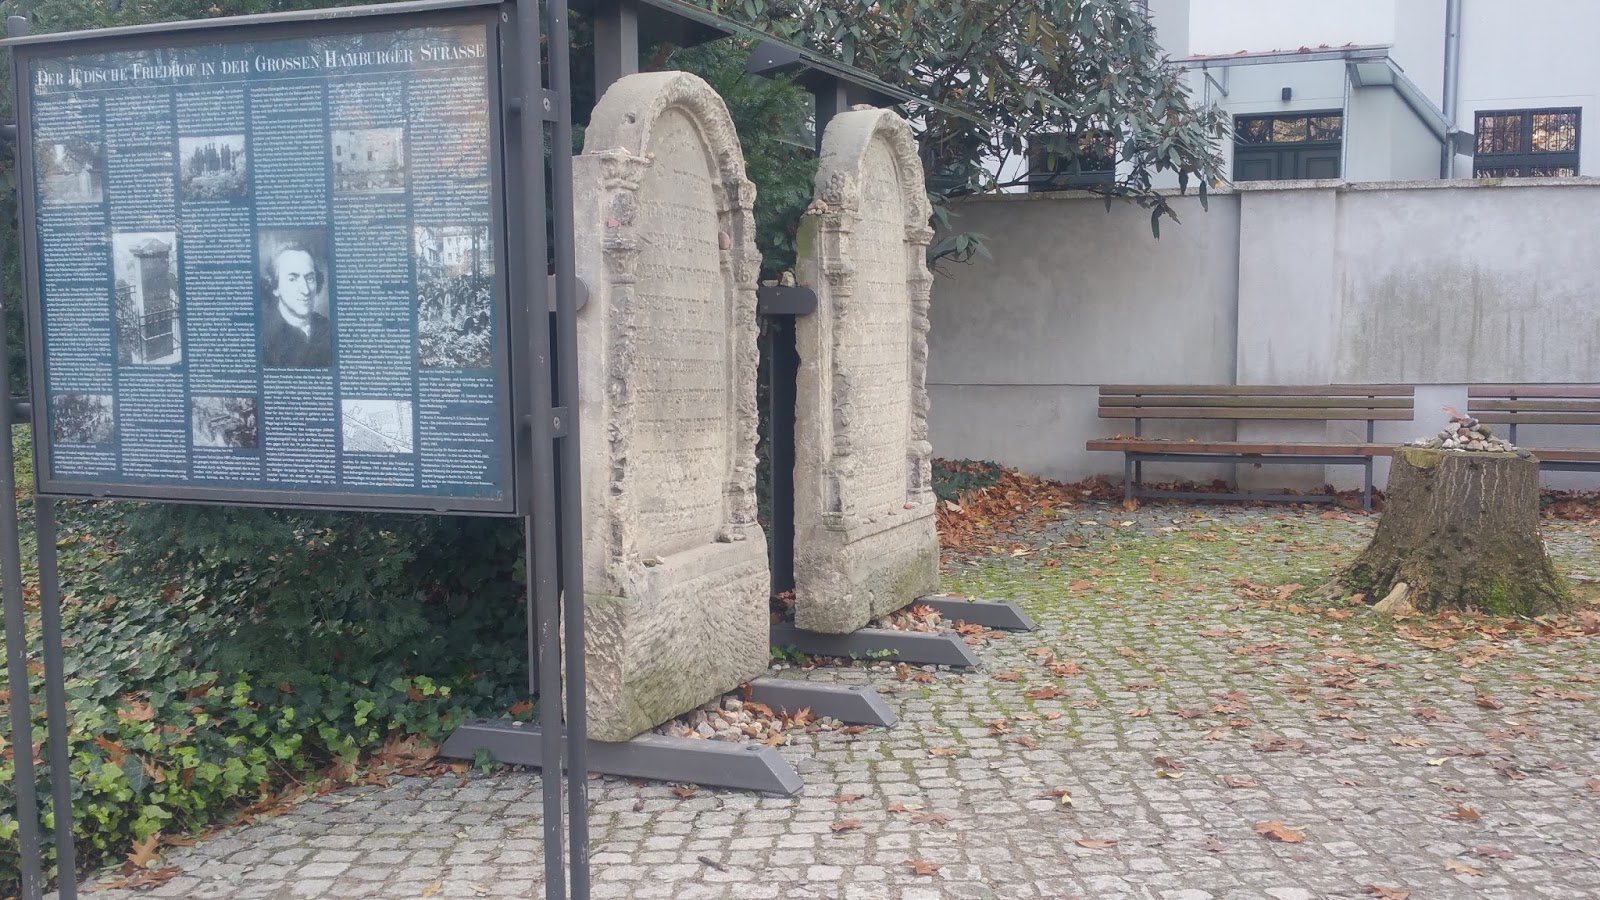 Jewish Cemetery At Grosse Hamburger Strasse In Berlin Germany Samuel Gruber S Jewish Art Monuments Germany Berlin S Old